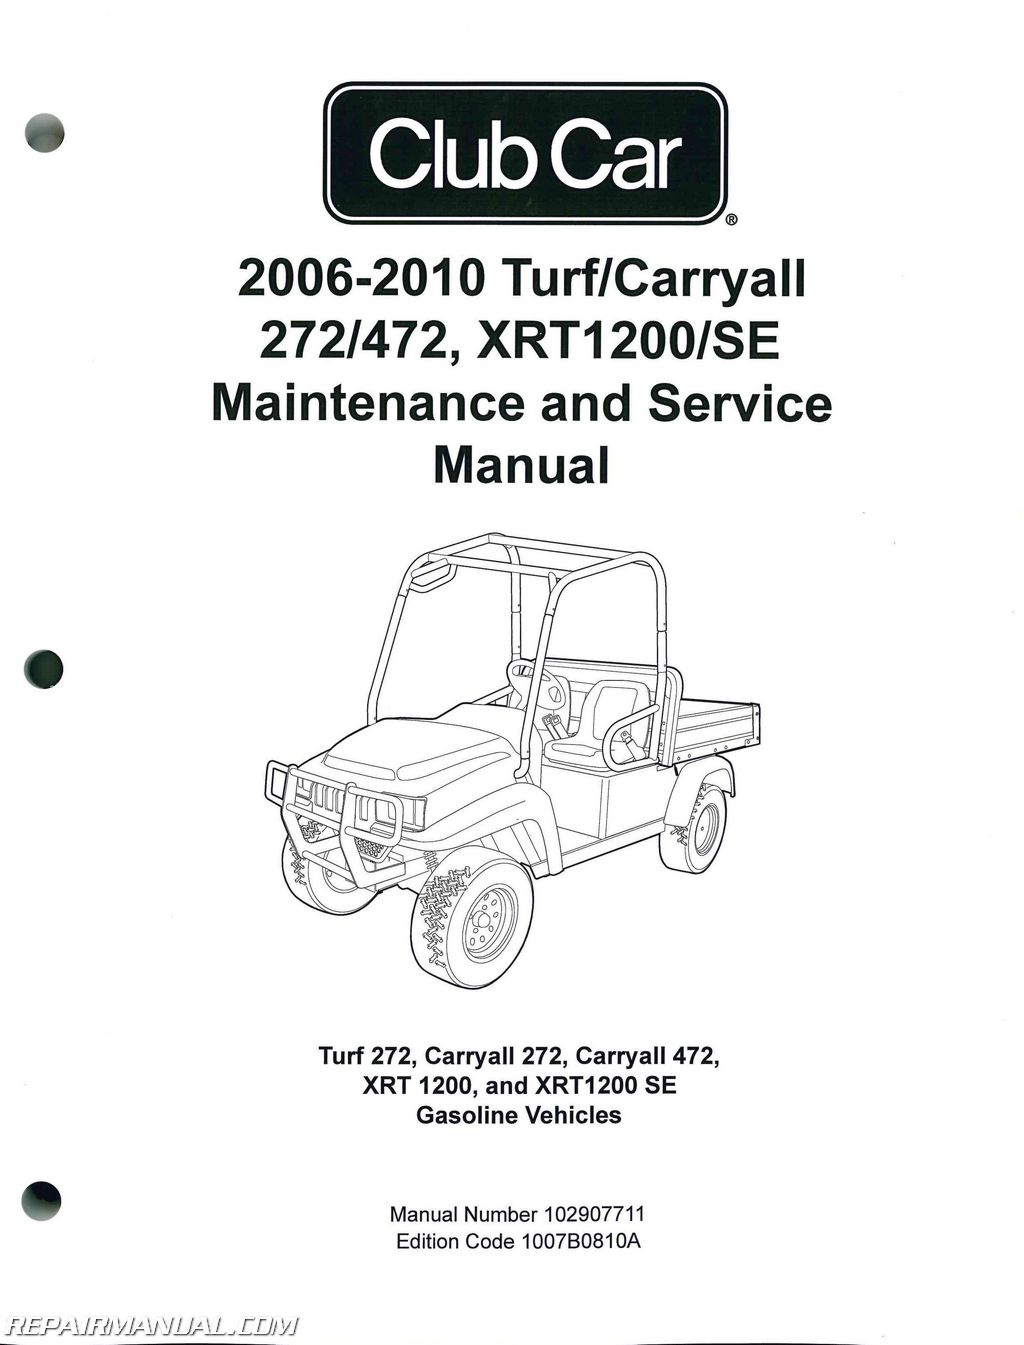 2006-2010 Club Car Turf, Carryall 272 472, XRT1200 SE Turf